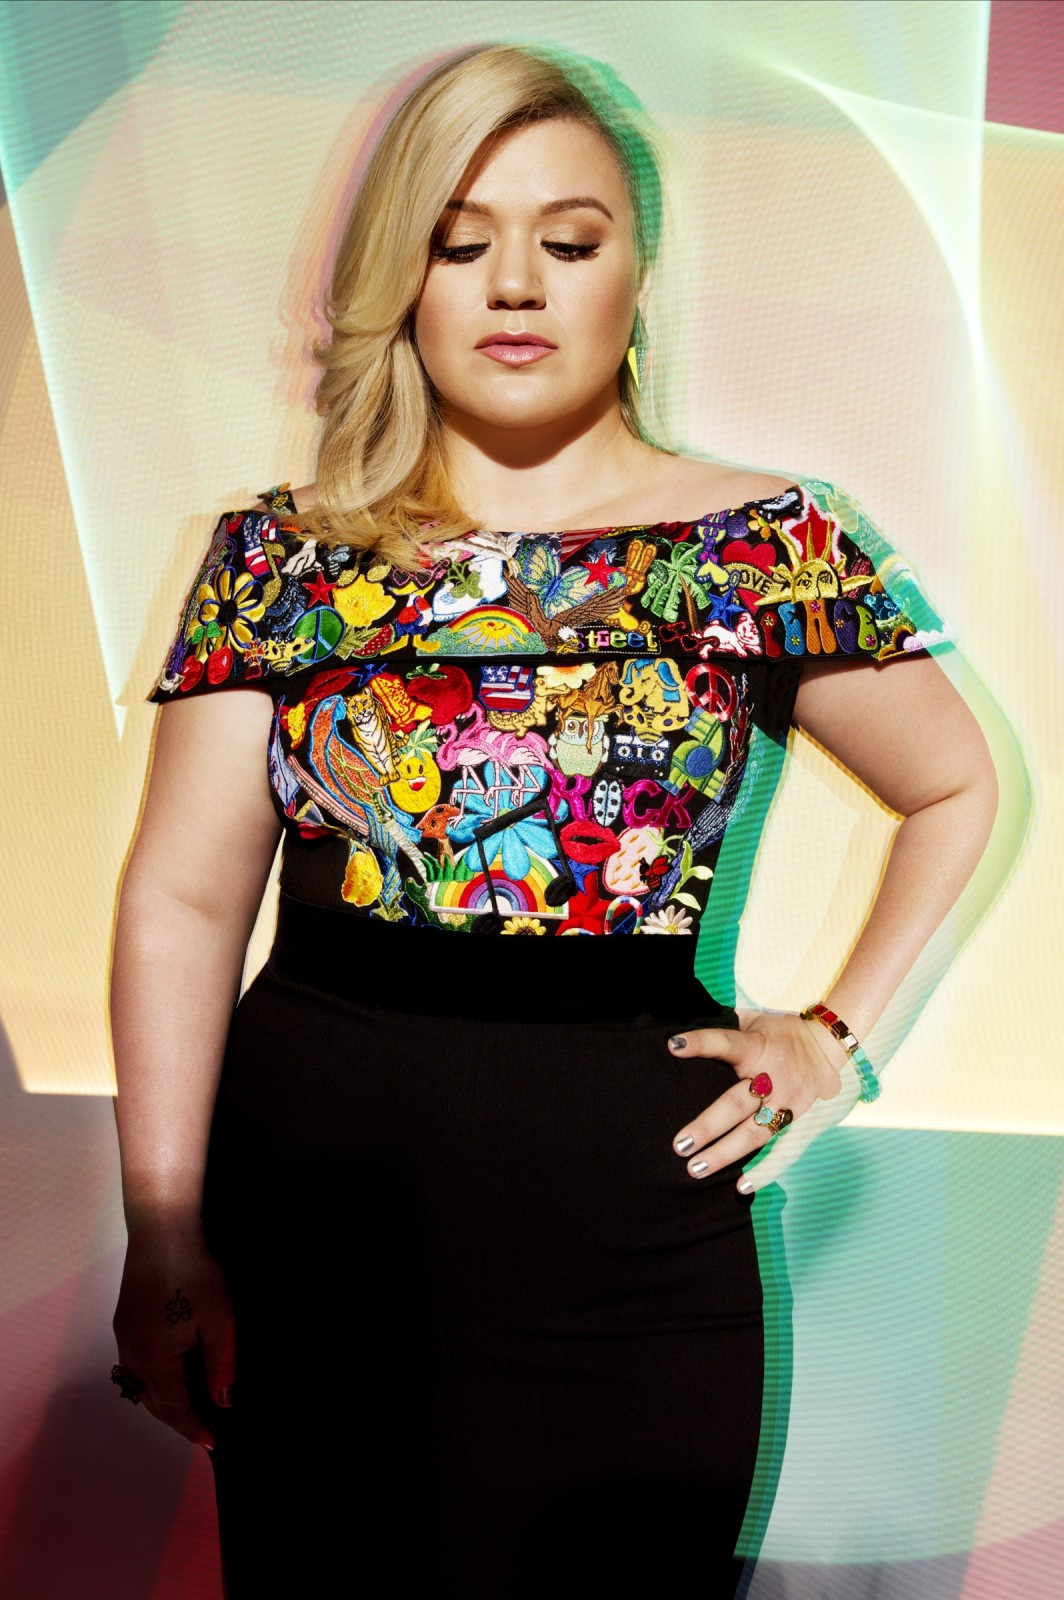 NEW MUSIC from KELLY CLARKSON!